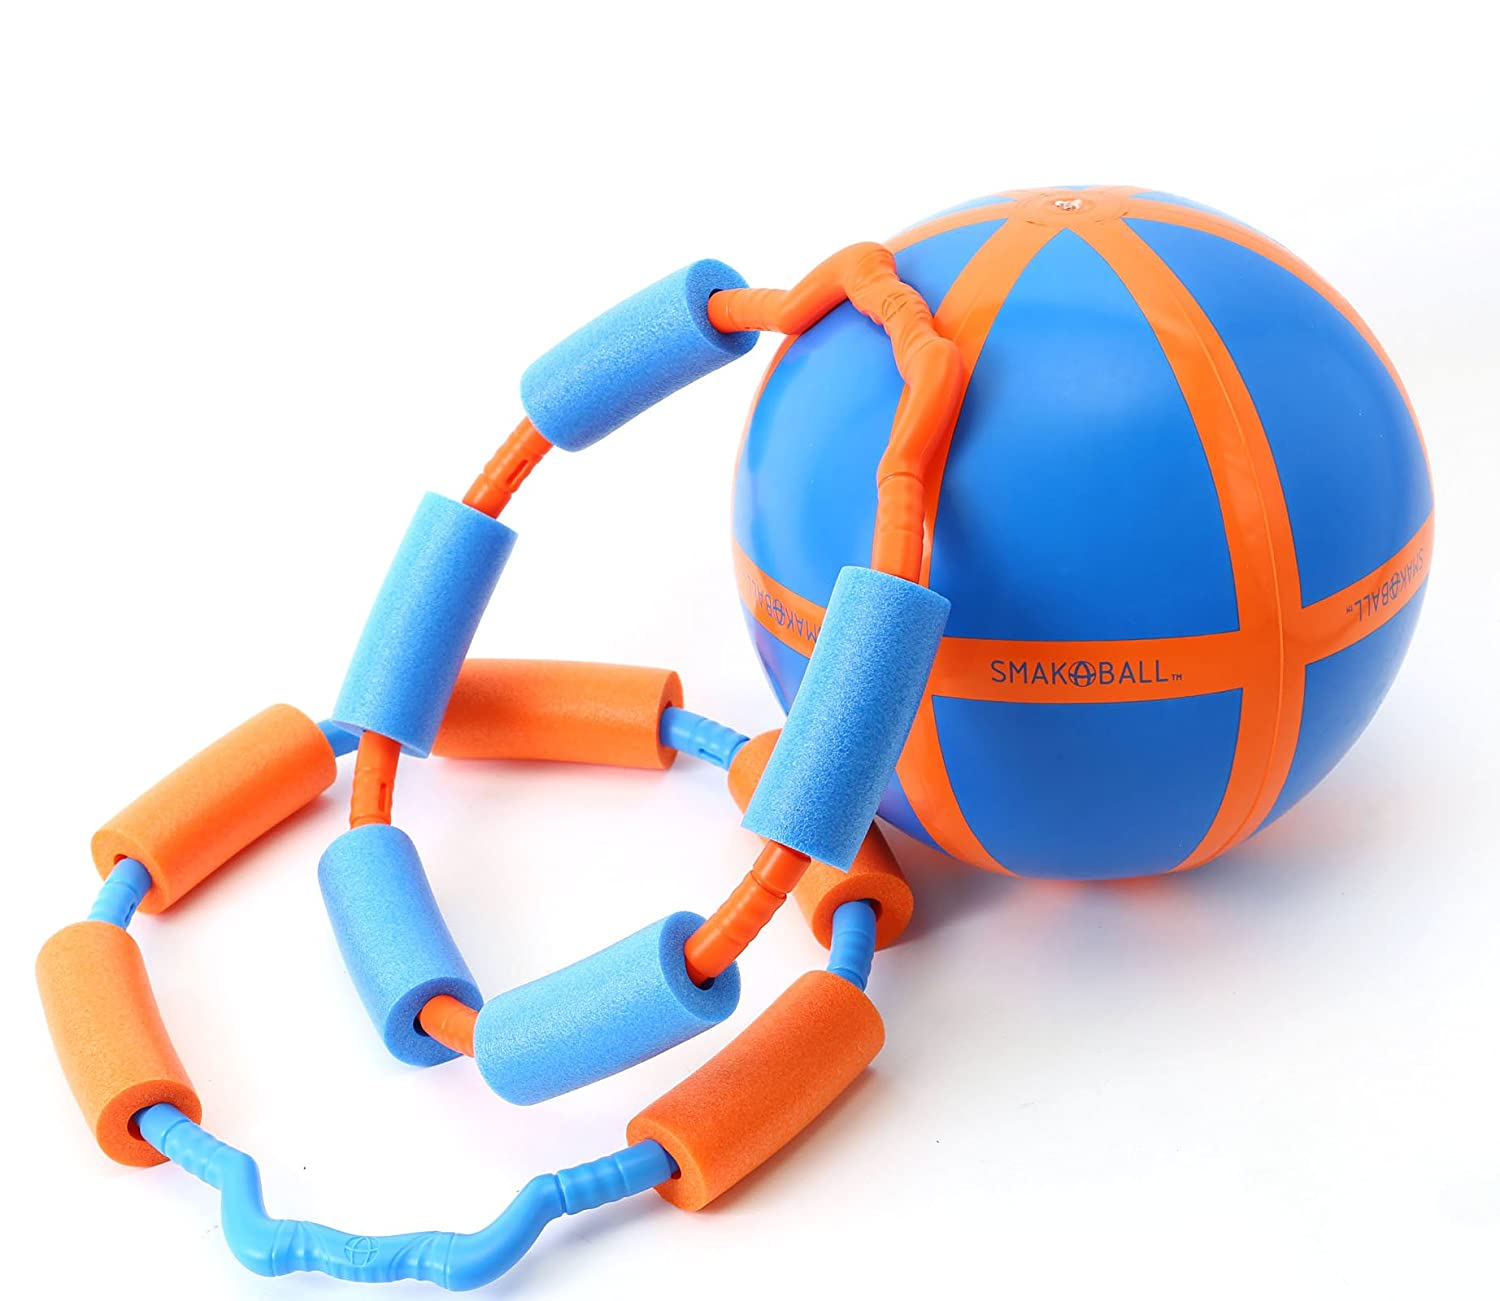 Amazon SMAKABALL Smakaball Set Orange Blue Sports & Outdoors